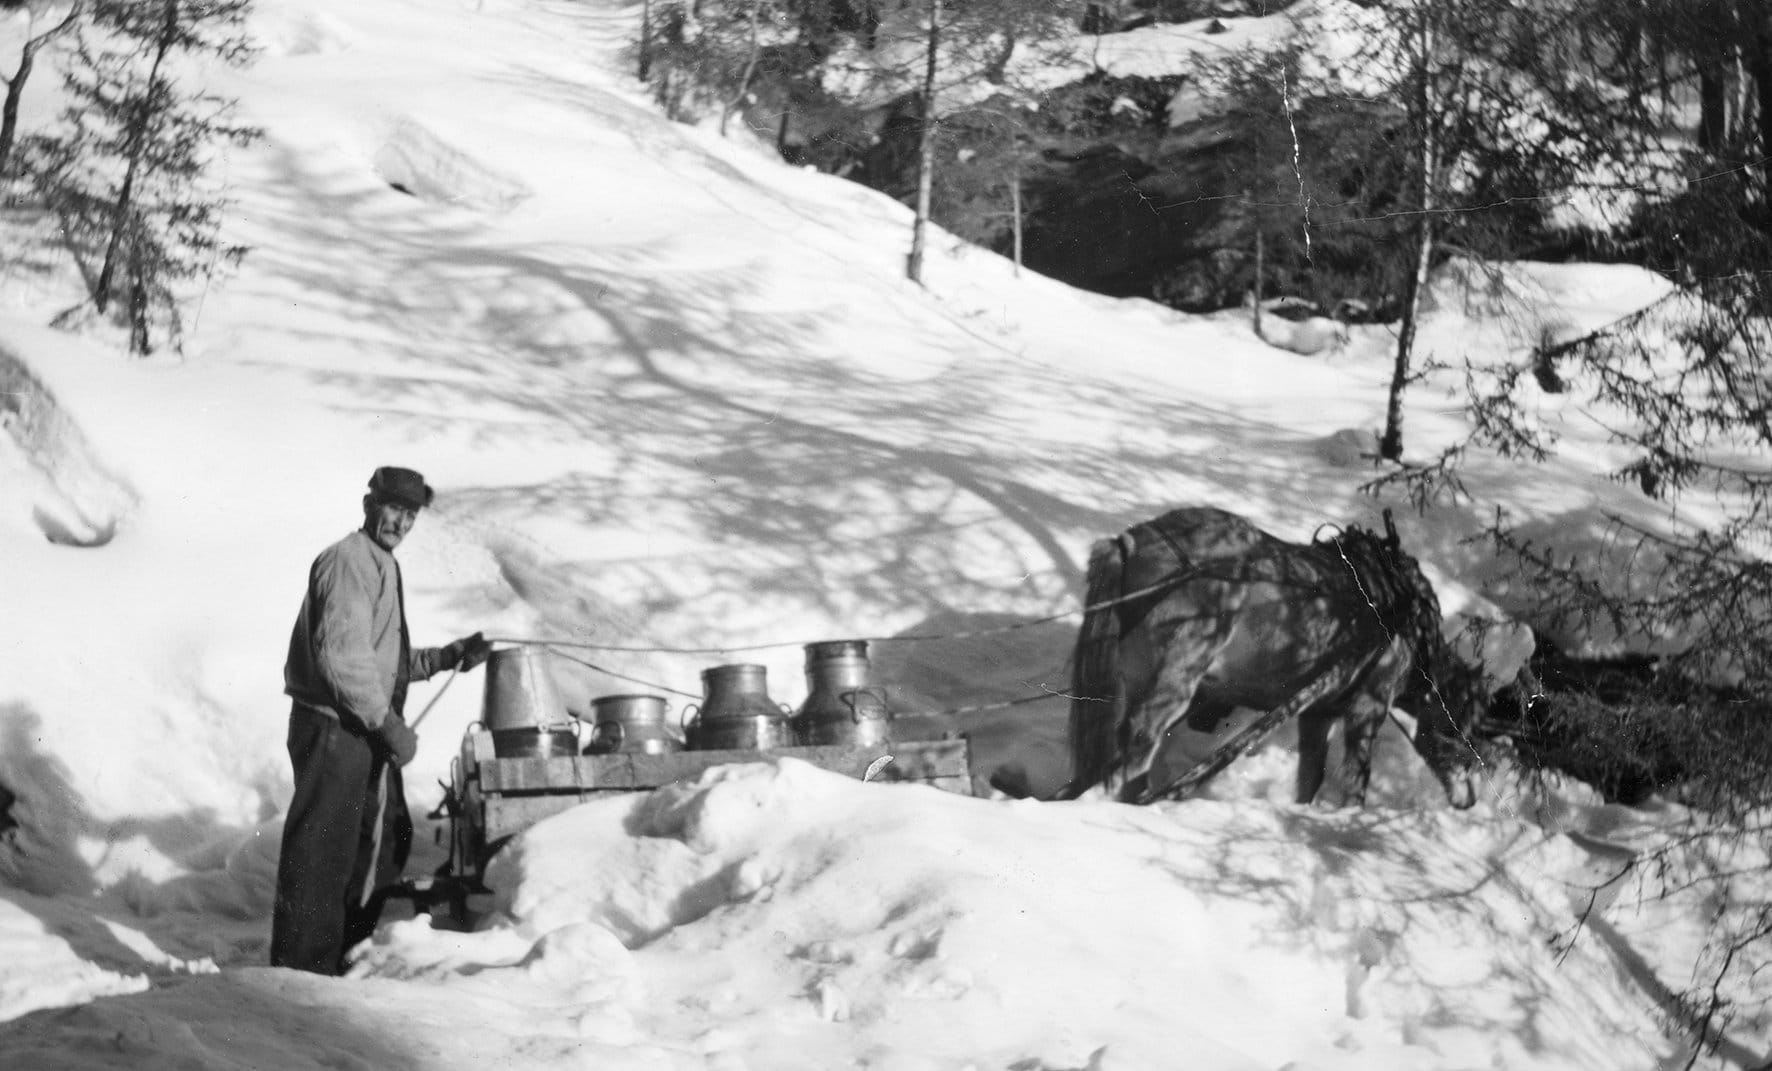 The Norwegian men did also contribute: O.K. Flaten and his horse on a cold winter's day - transporting water in large metal milk churns. | Photo: Unknown domkirkeodden - digitaltmuseum.no HHB-15719 - public domain.